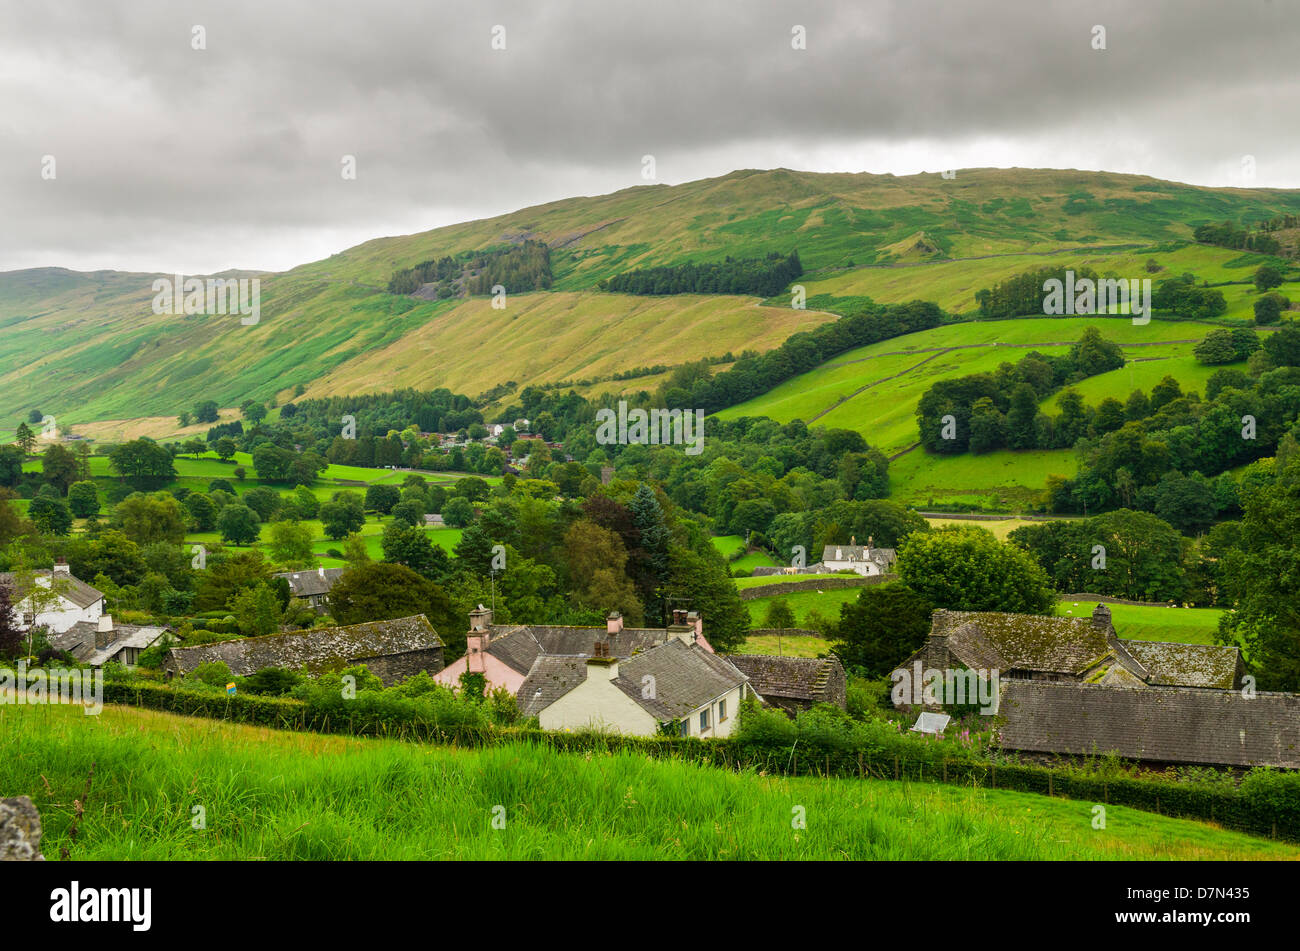 The village of Troutbeck near Windermere in the Lake District, Cumbria, England. - Stock Image